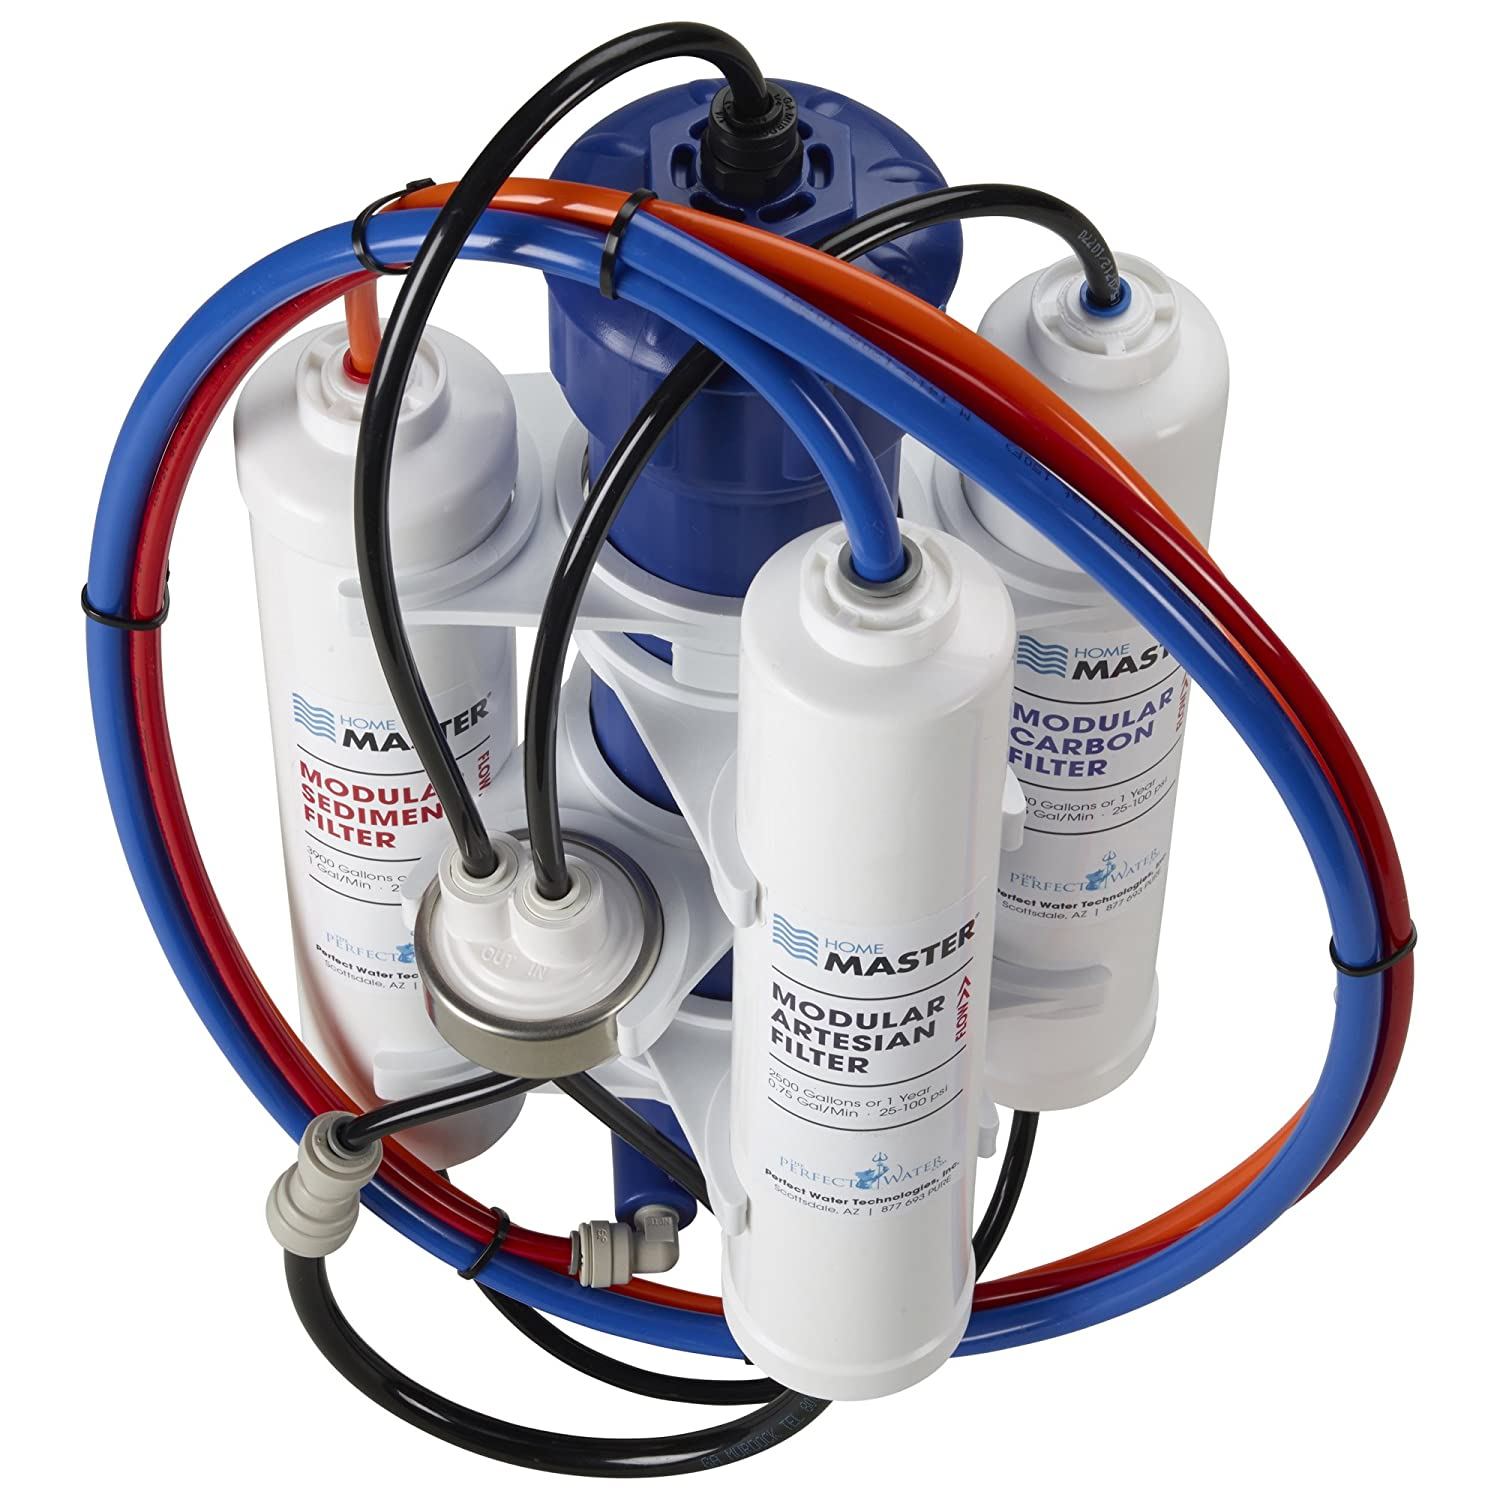 HydroGardener TMA-HG Advanced Remineralizing Garden and Hydroponic Reverse Osmosis Water Filtration System, White